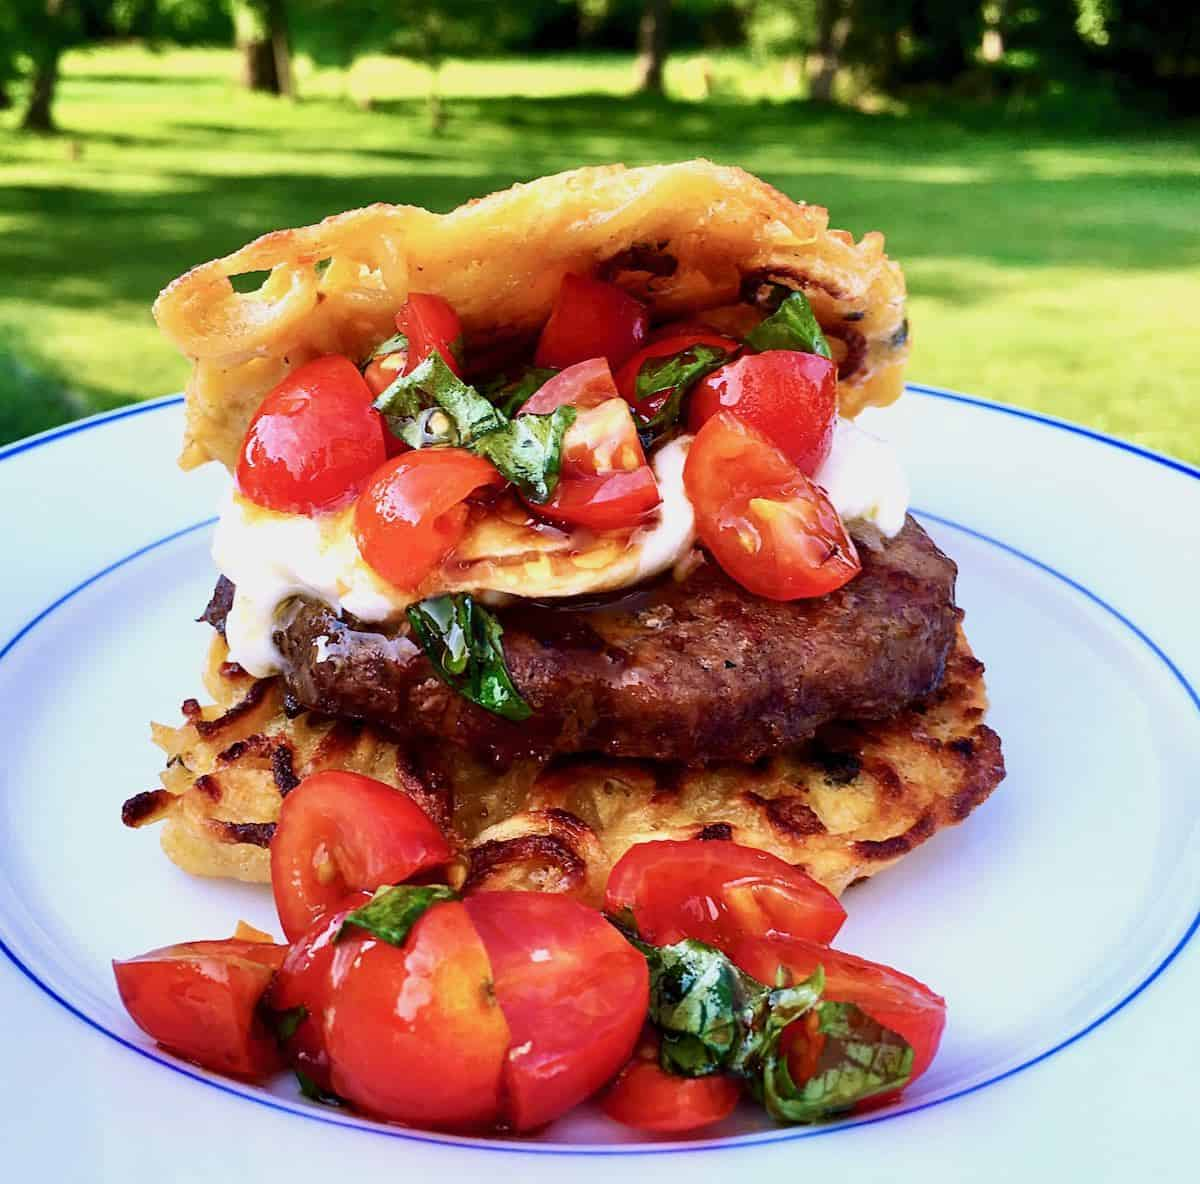 a recipe with yakisoba noodle bun burger with tomatoes and cheese